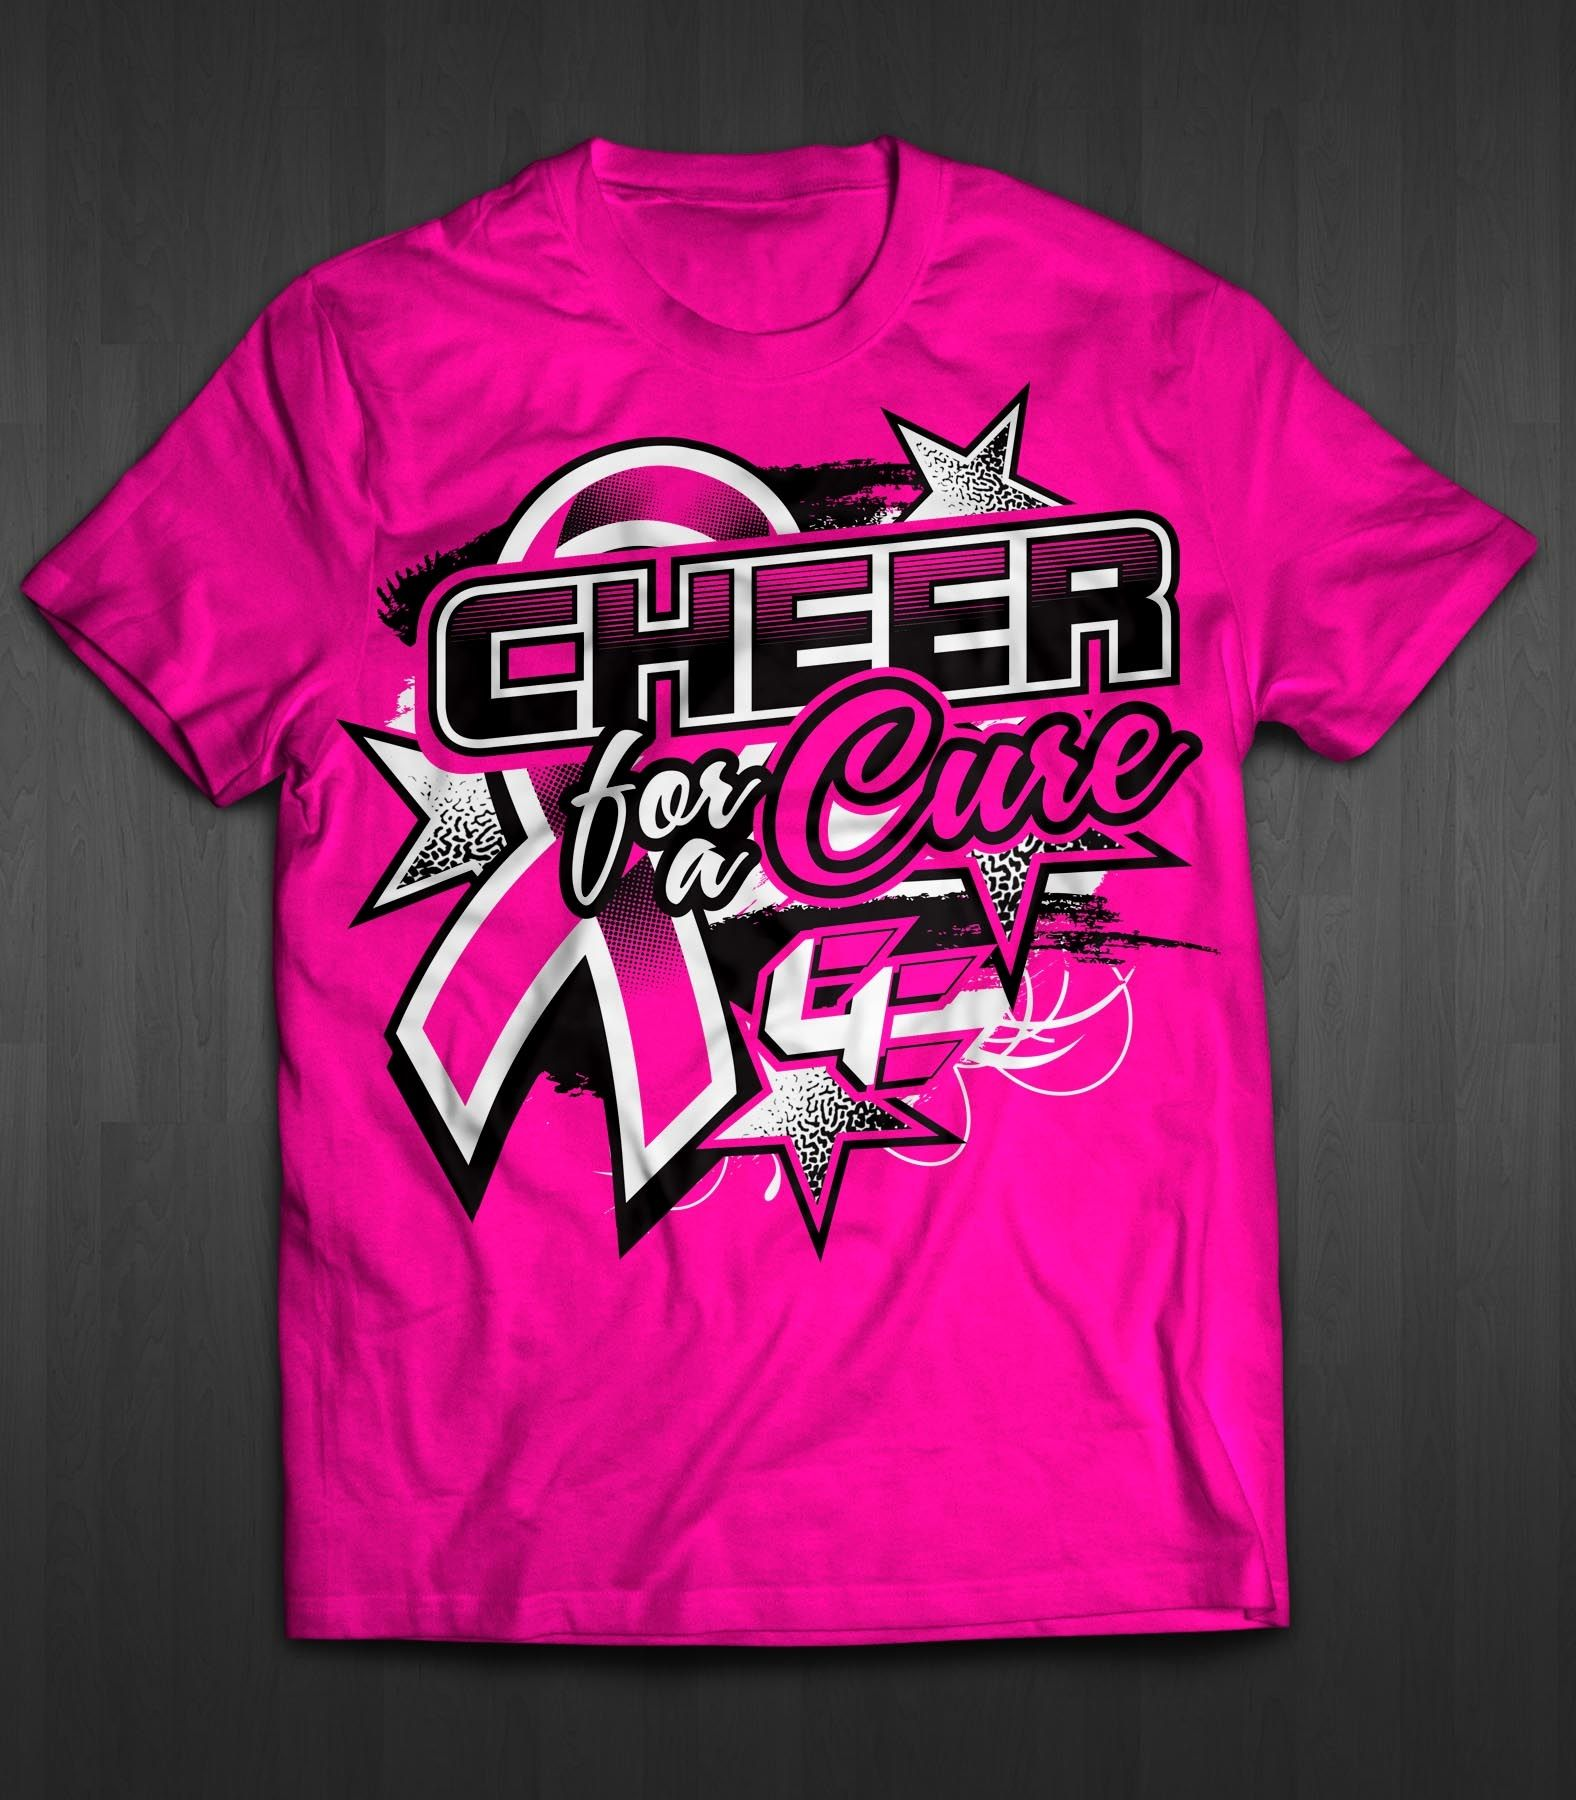 Cheer shirt designs t shirts design concept Cheerleading t shirt designs